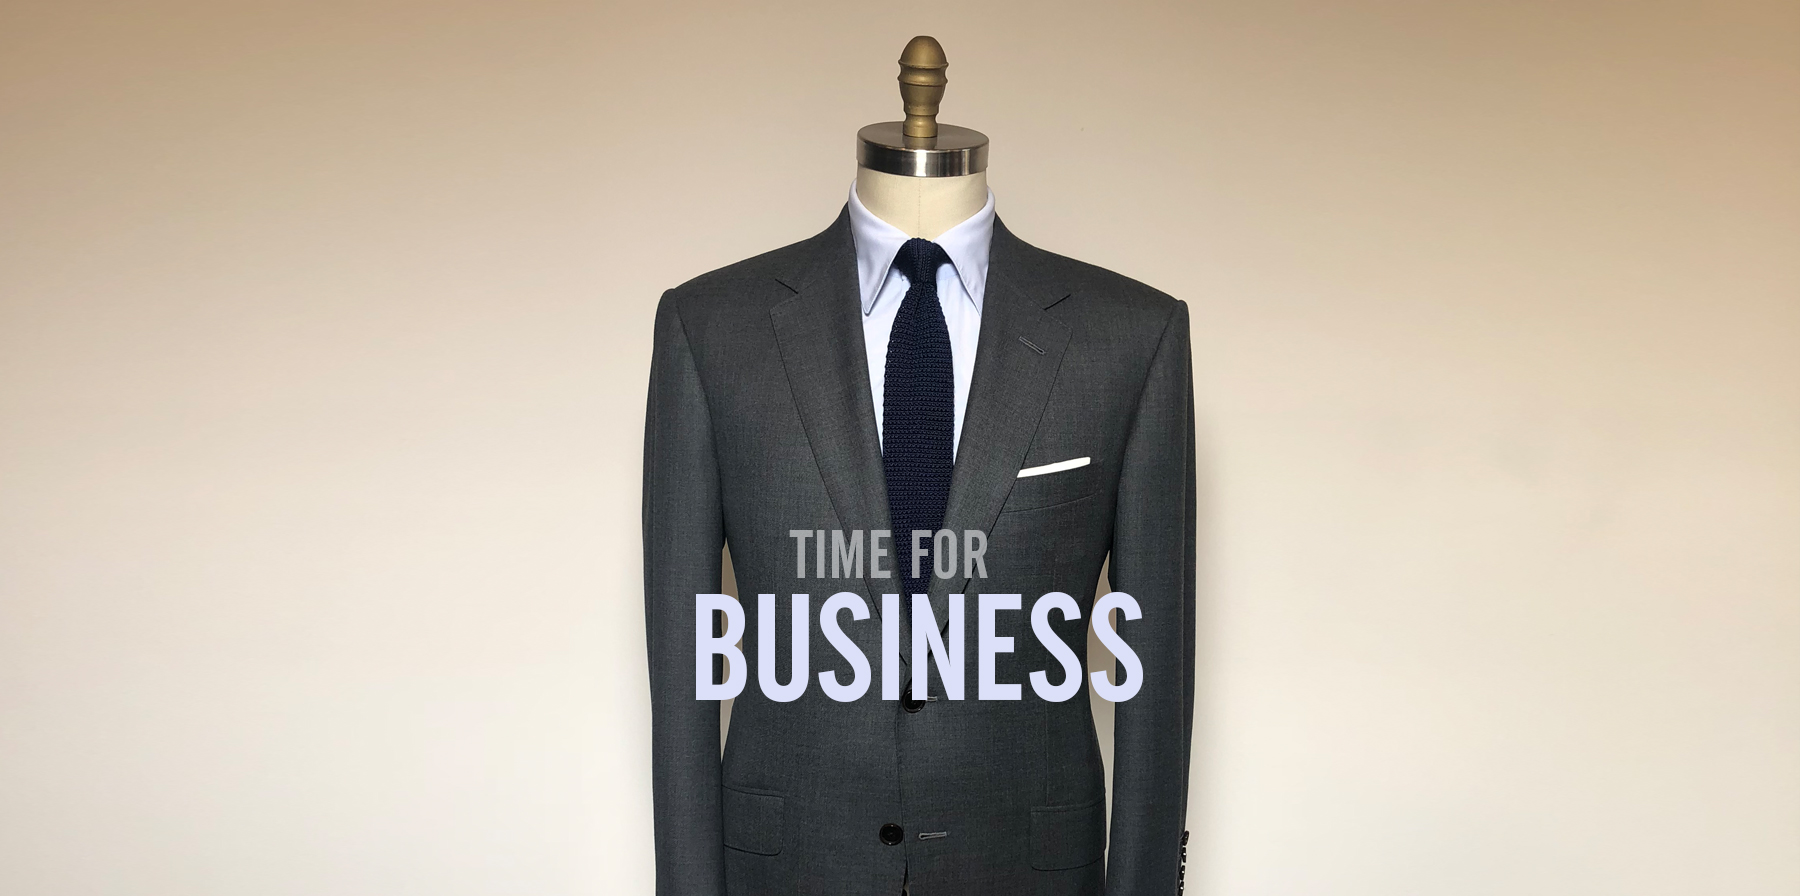 Fox-Flannel-webfronts-161018-BUSINESS.jpg